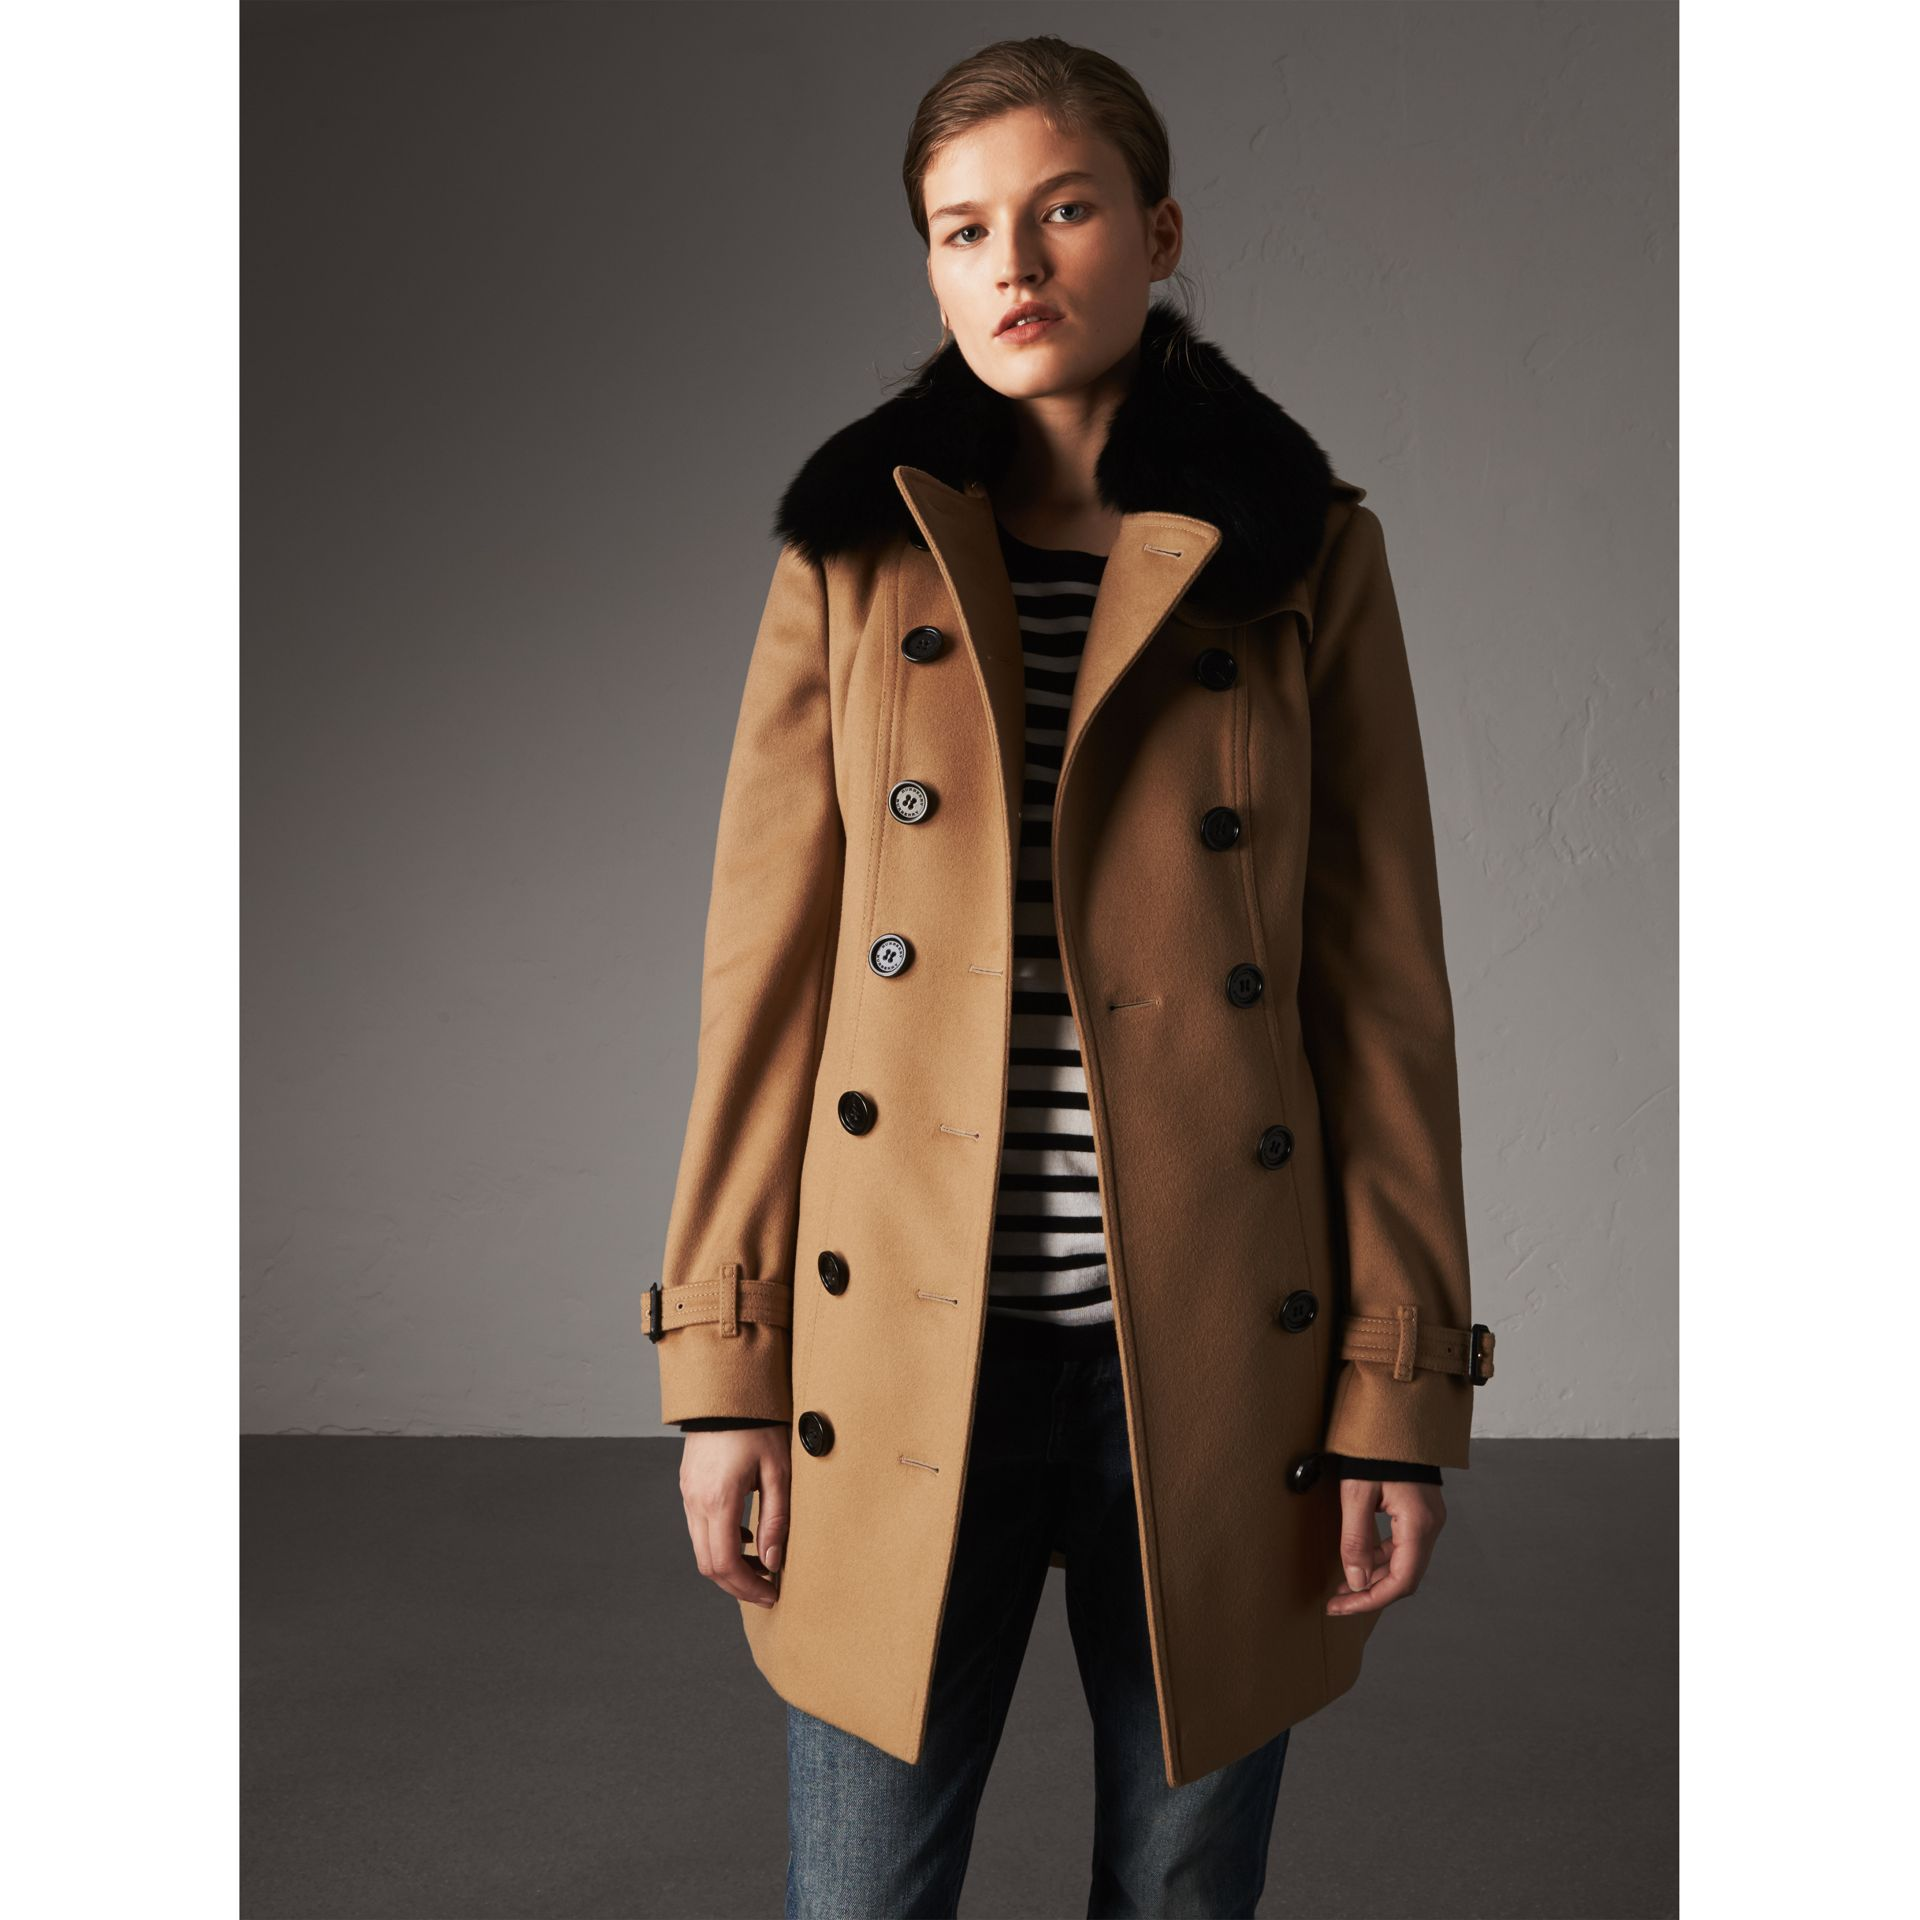 Wool Cashmere Trench Coat with Fur Collar in Camel - Women | Burberry United Kingdom - gallery image 0